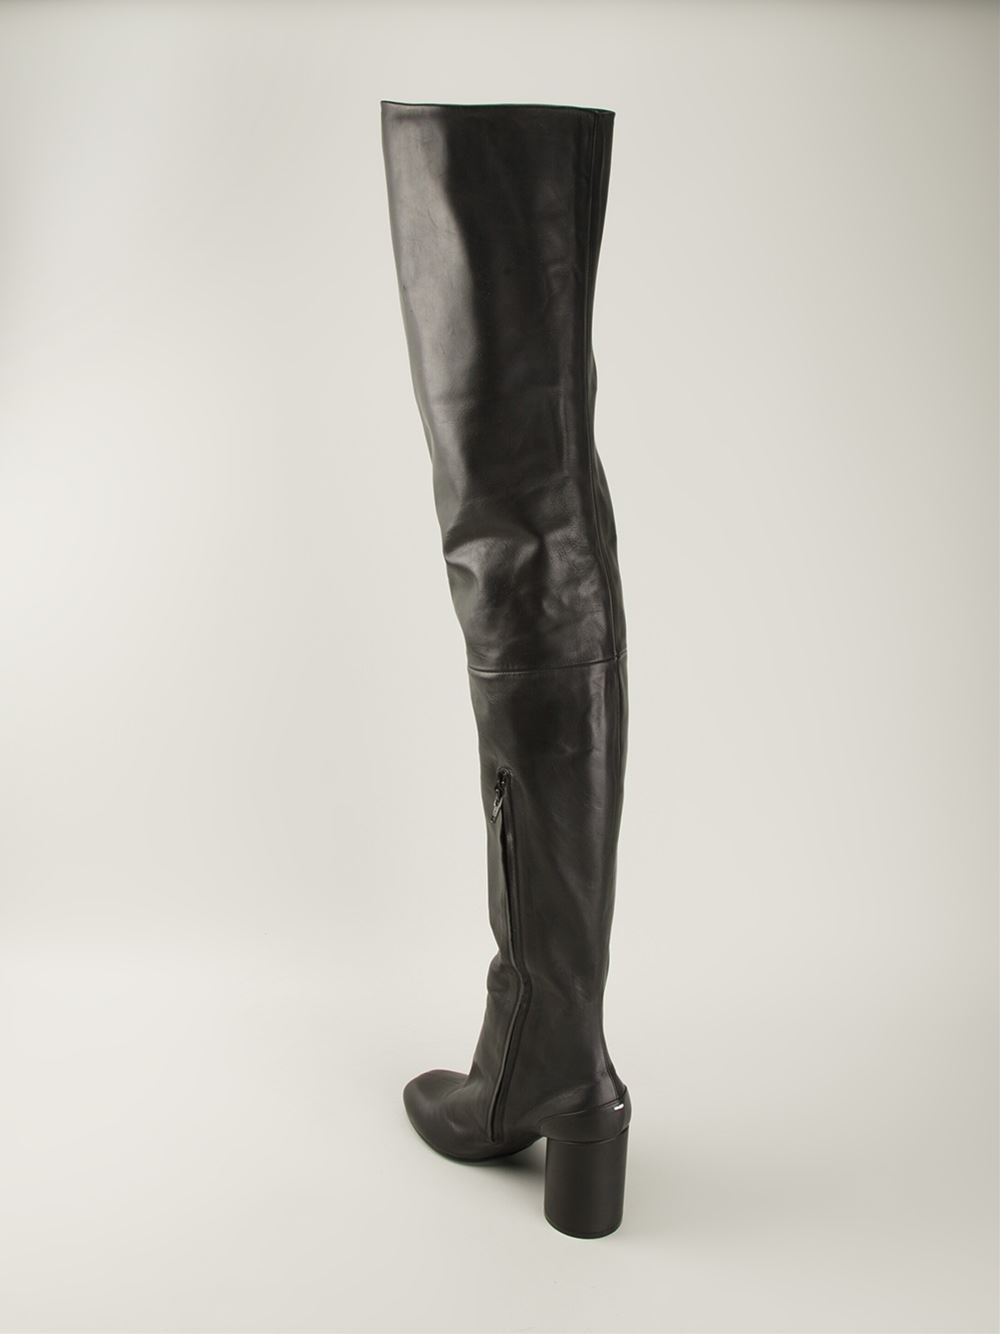 Maison Martin Margiela Thigh High Boots - Tassinari - Farfetch.com